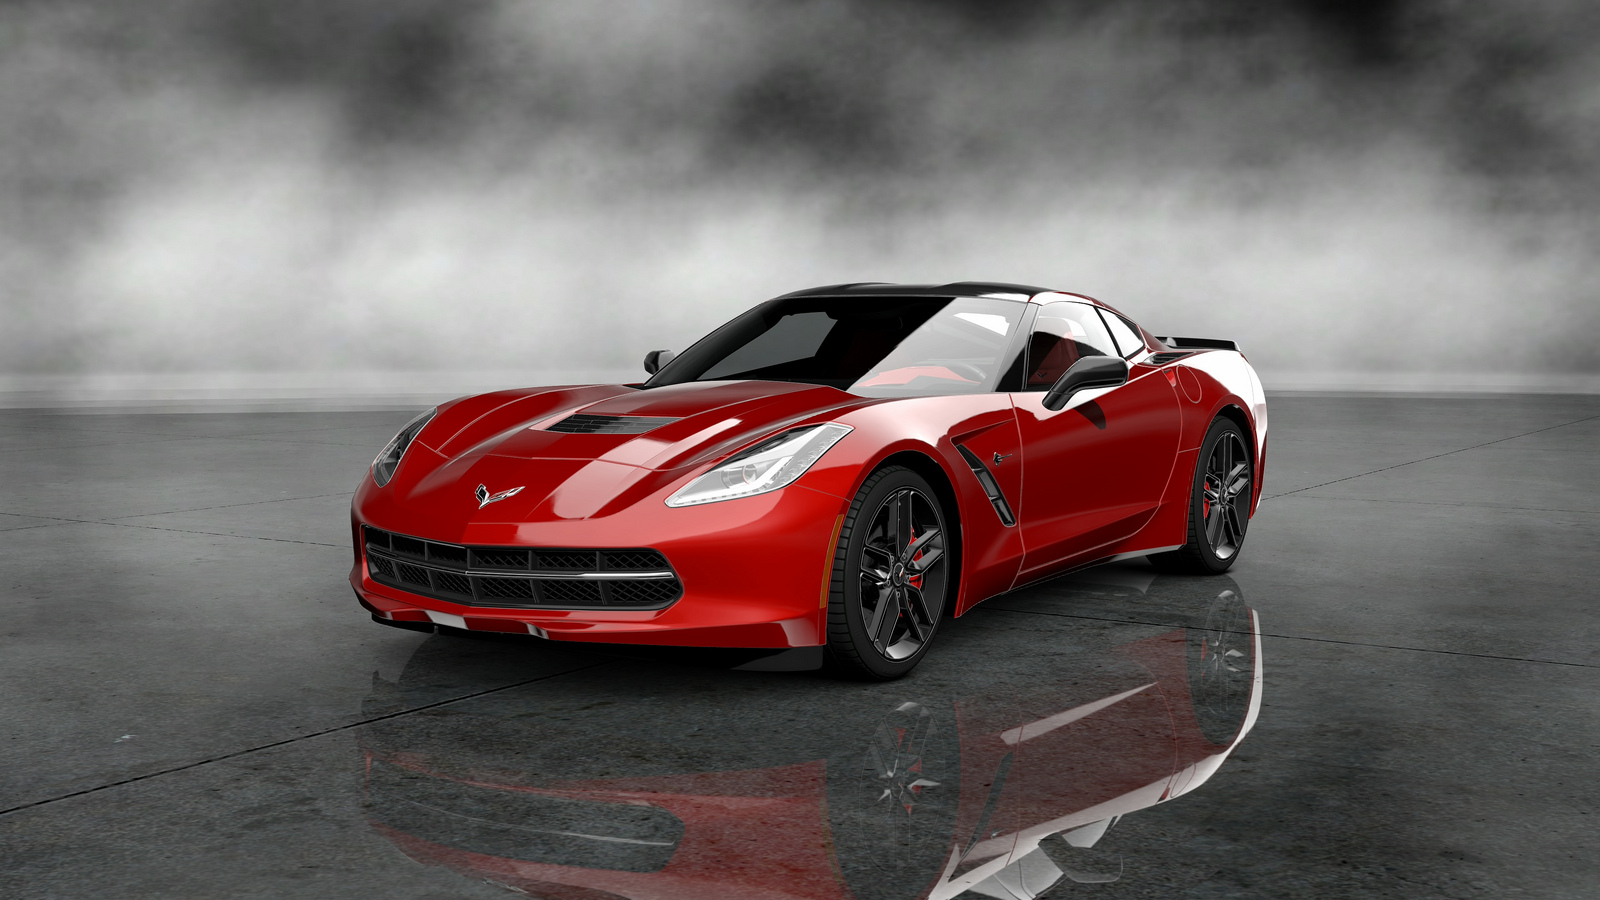 2014 corvette stingray makes its debut on gran turismo 5 gamer living. Black Bedroom Furniture Sets. Home Design Ideas